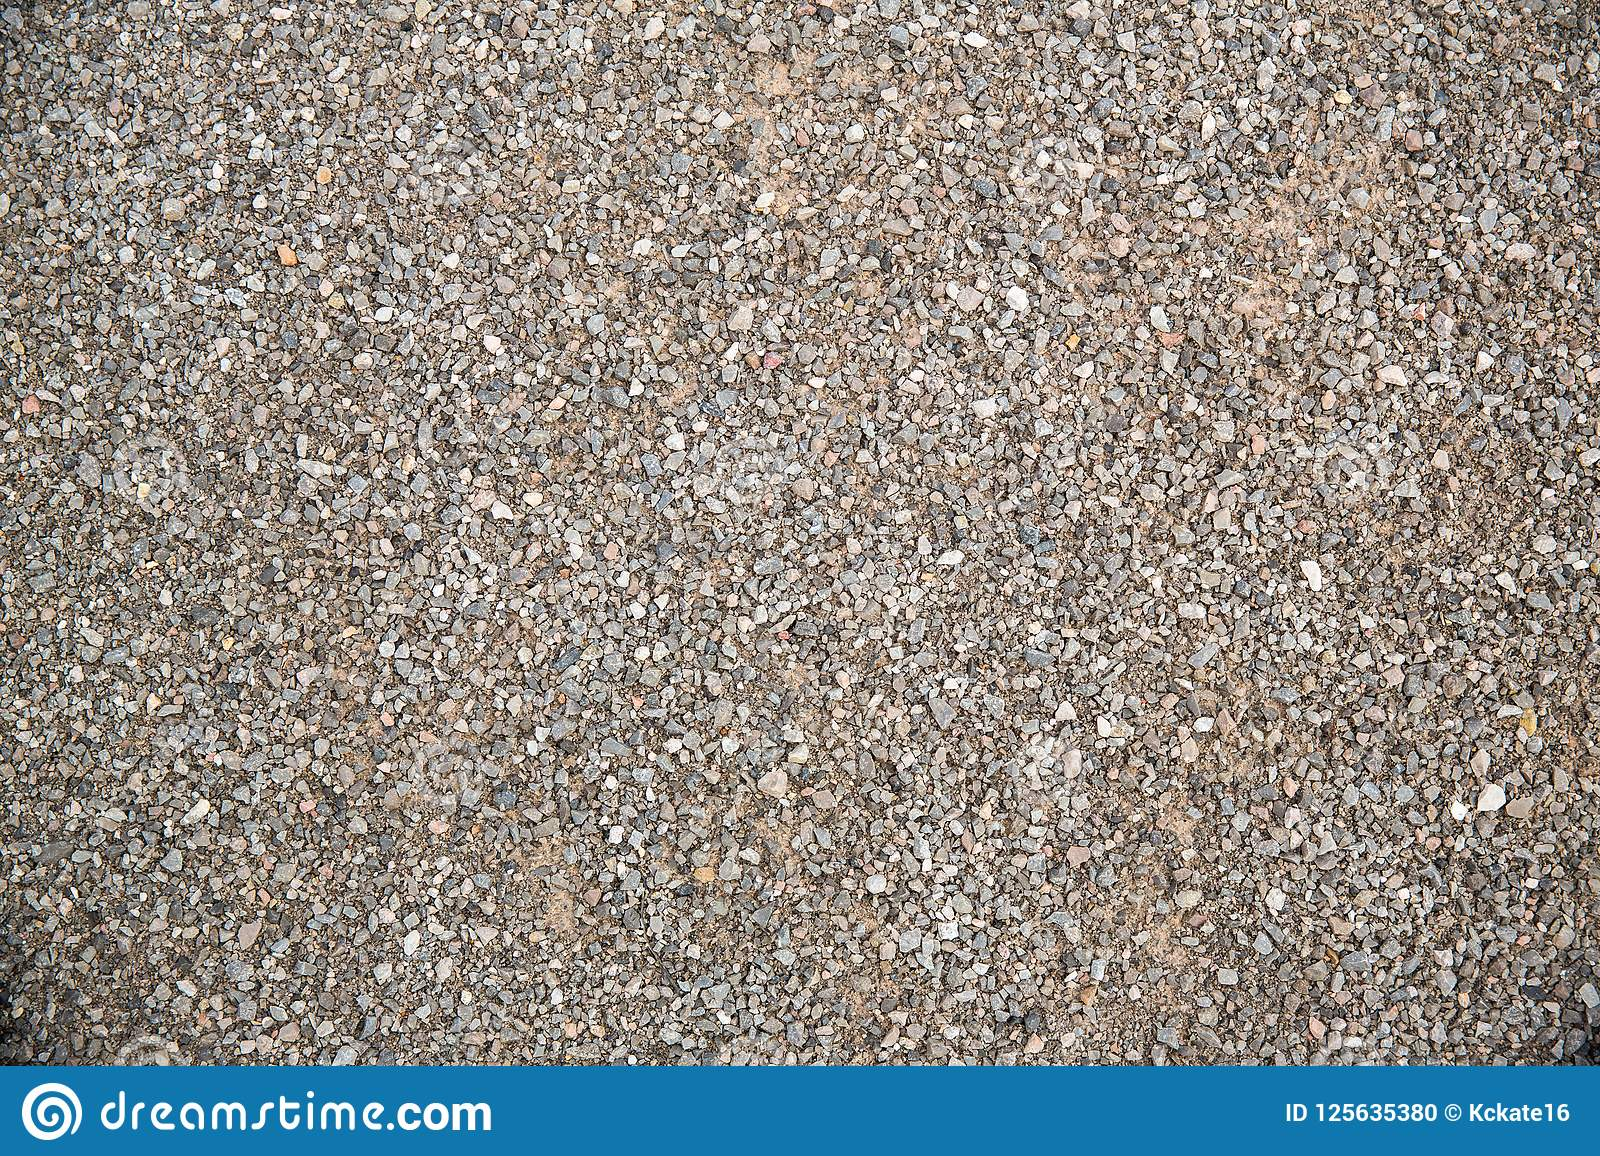 Close up fine gravel texture. gravel background, pebble wallpaper. image for background, wallpaper and copy space.